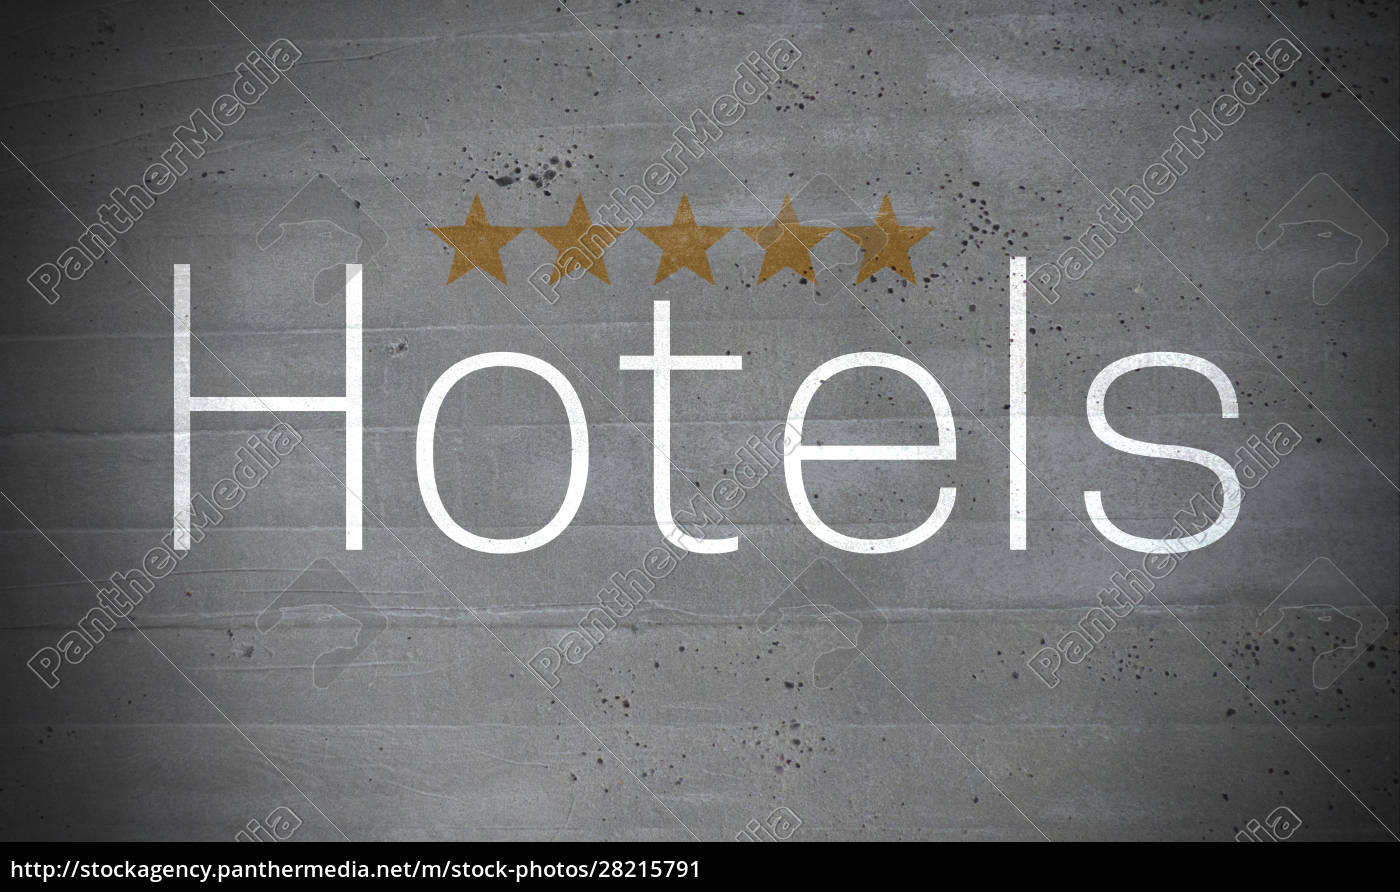 hotels, on, concrete, wall, concept, background - 28215791